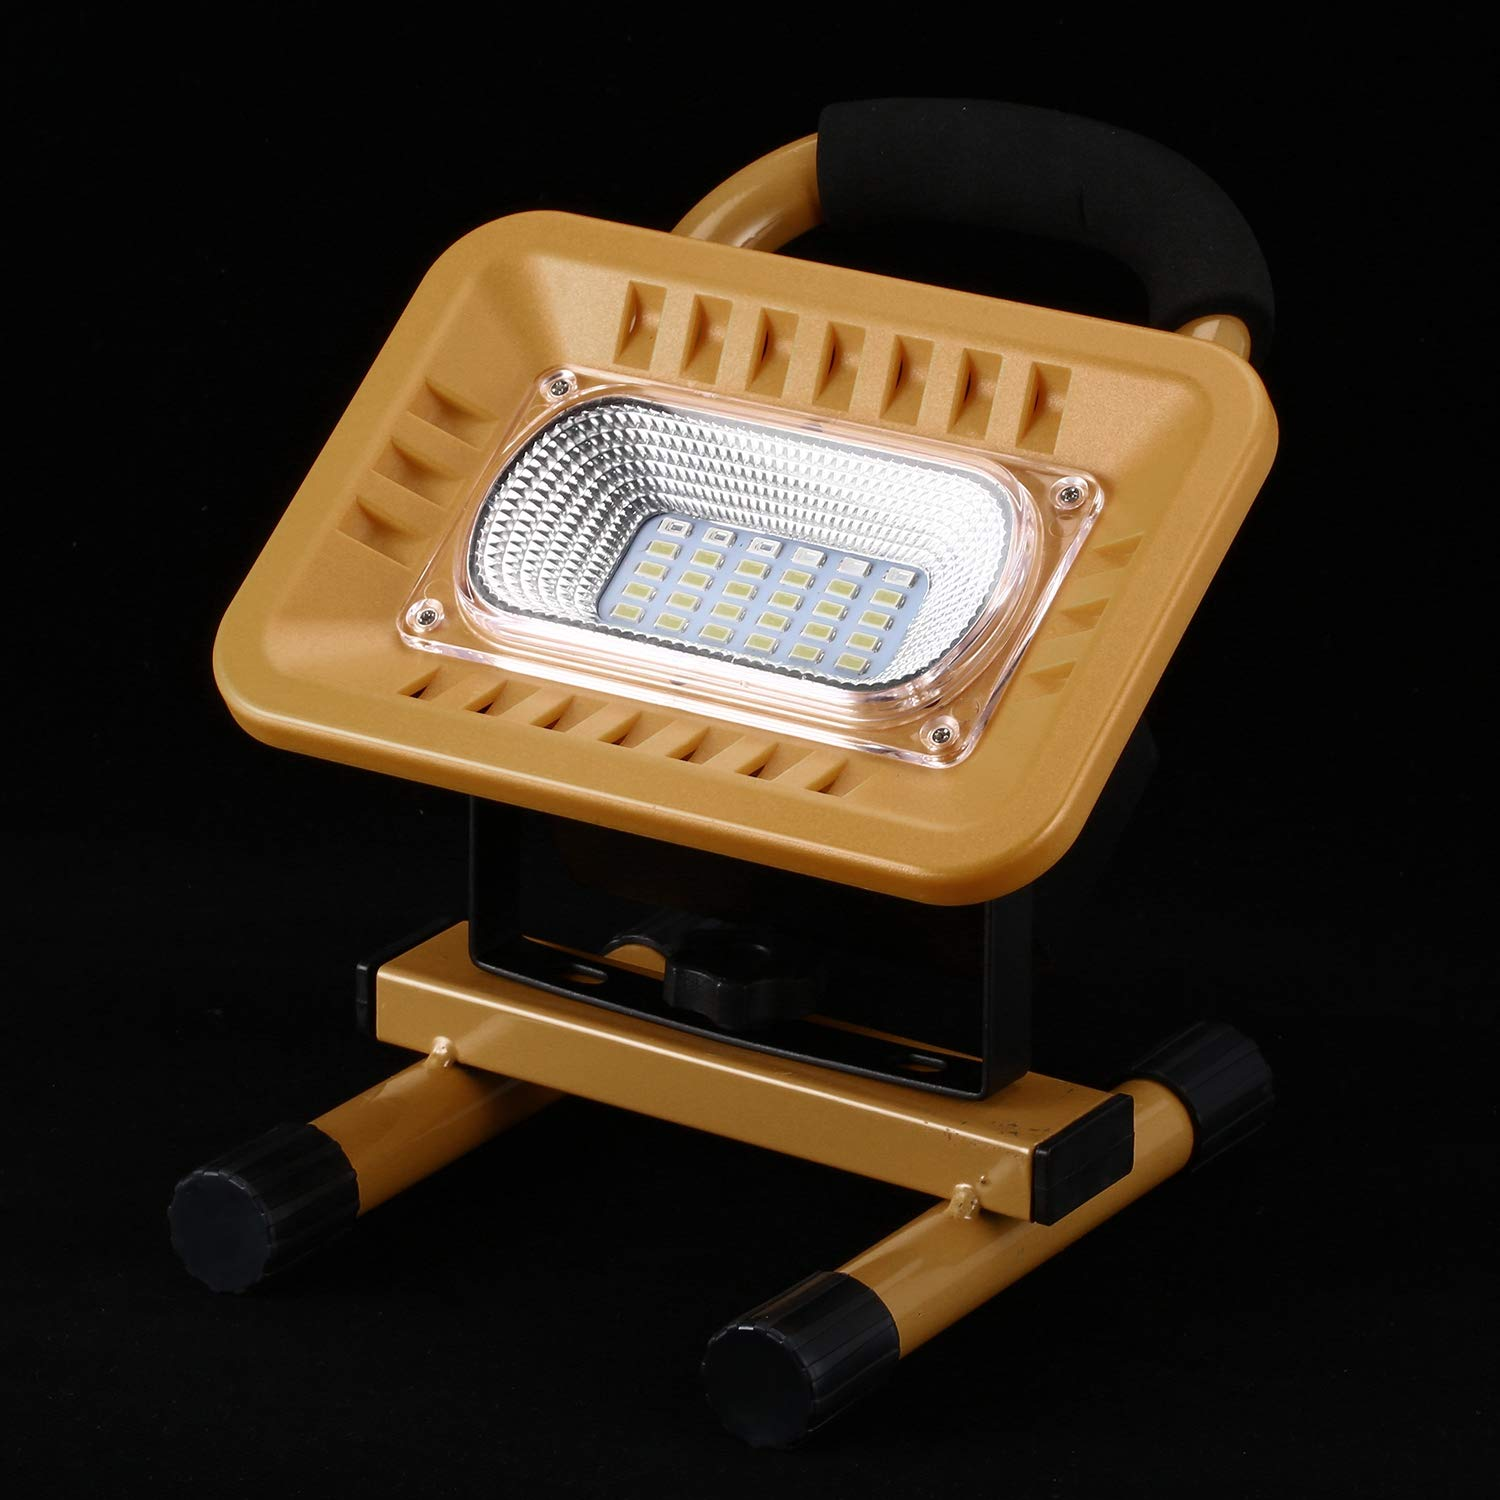 Foreverharbor Led Charging Floodlights Stall Tent Camping Outdoor Portable Home Emergency by Foreverharbor (Image #3)